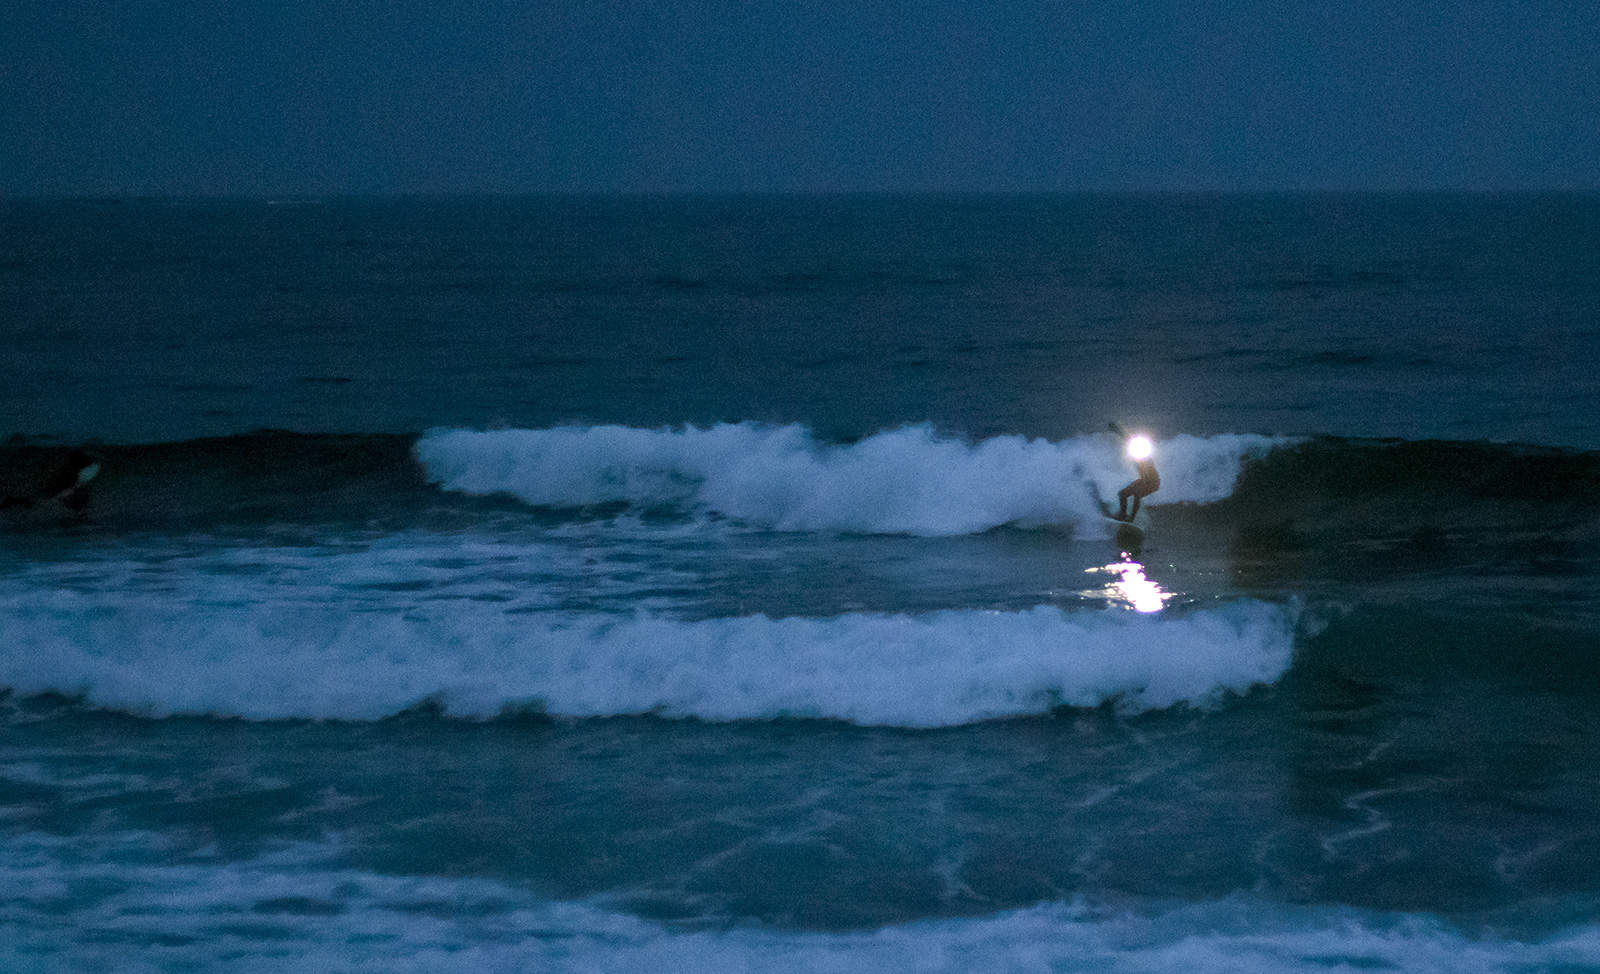 Night surfing. Photo: Miha Godec